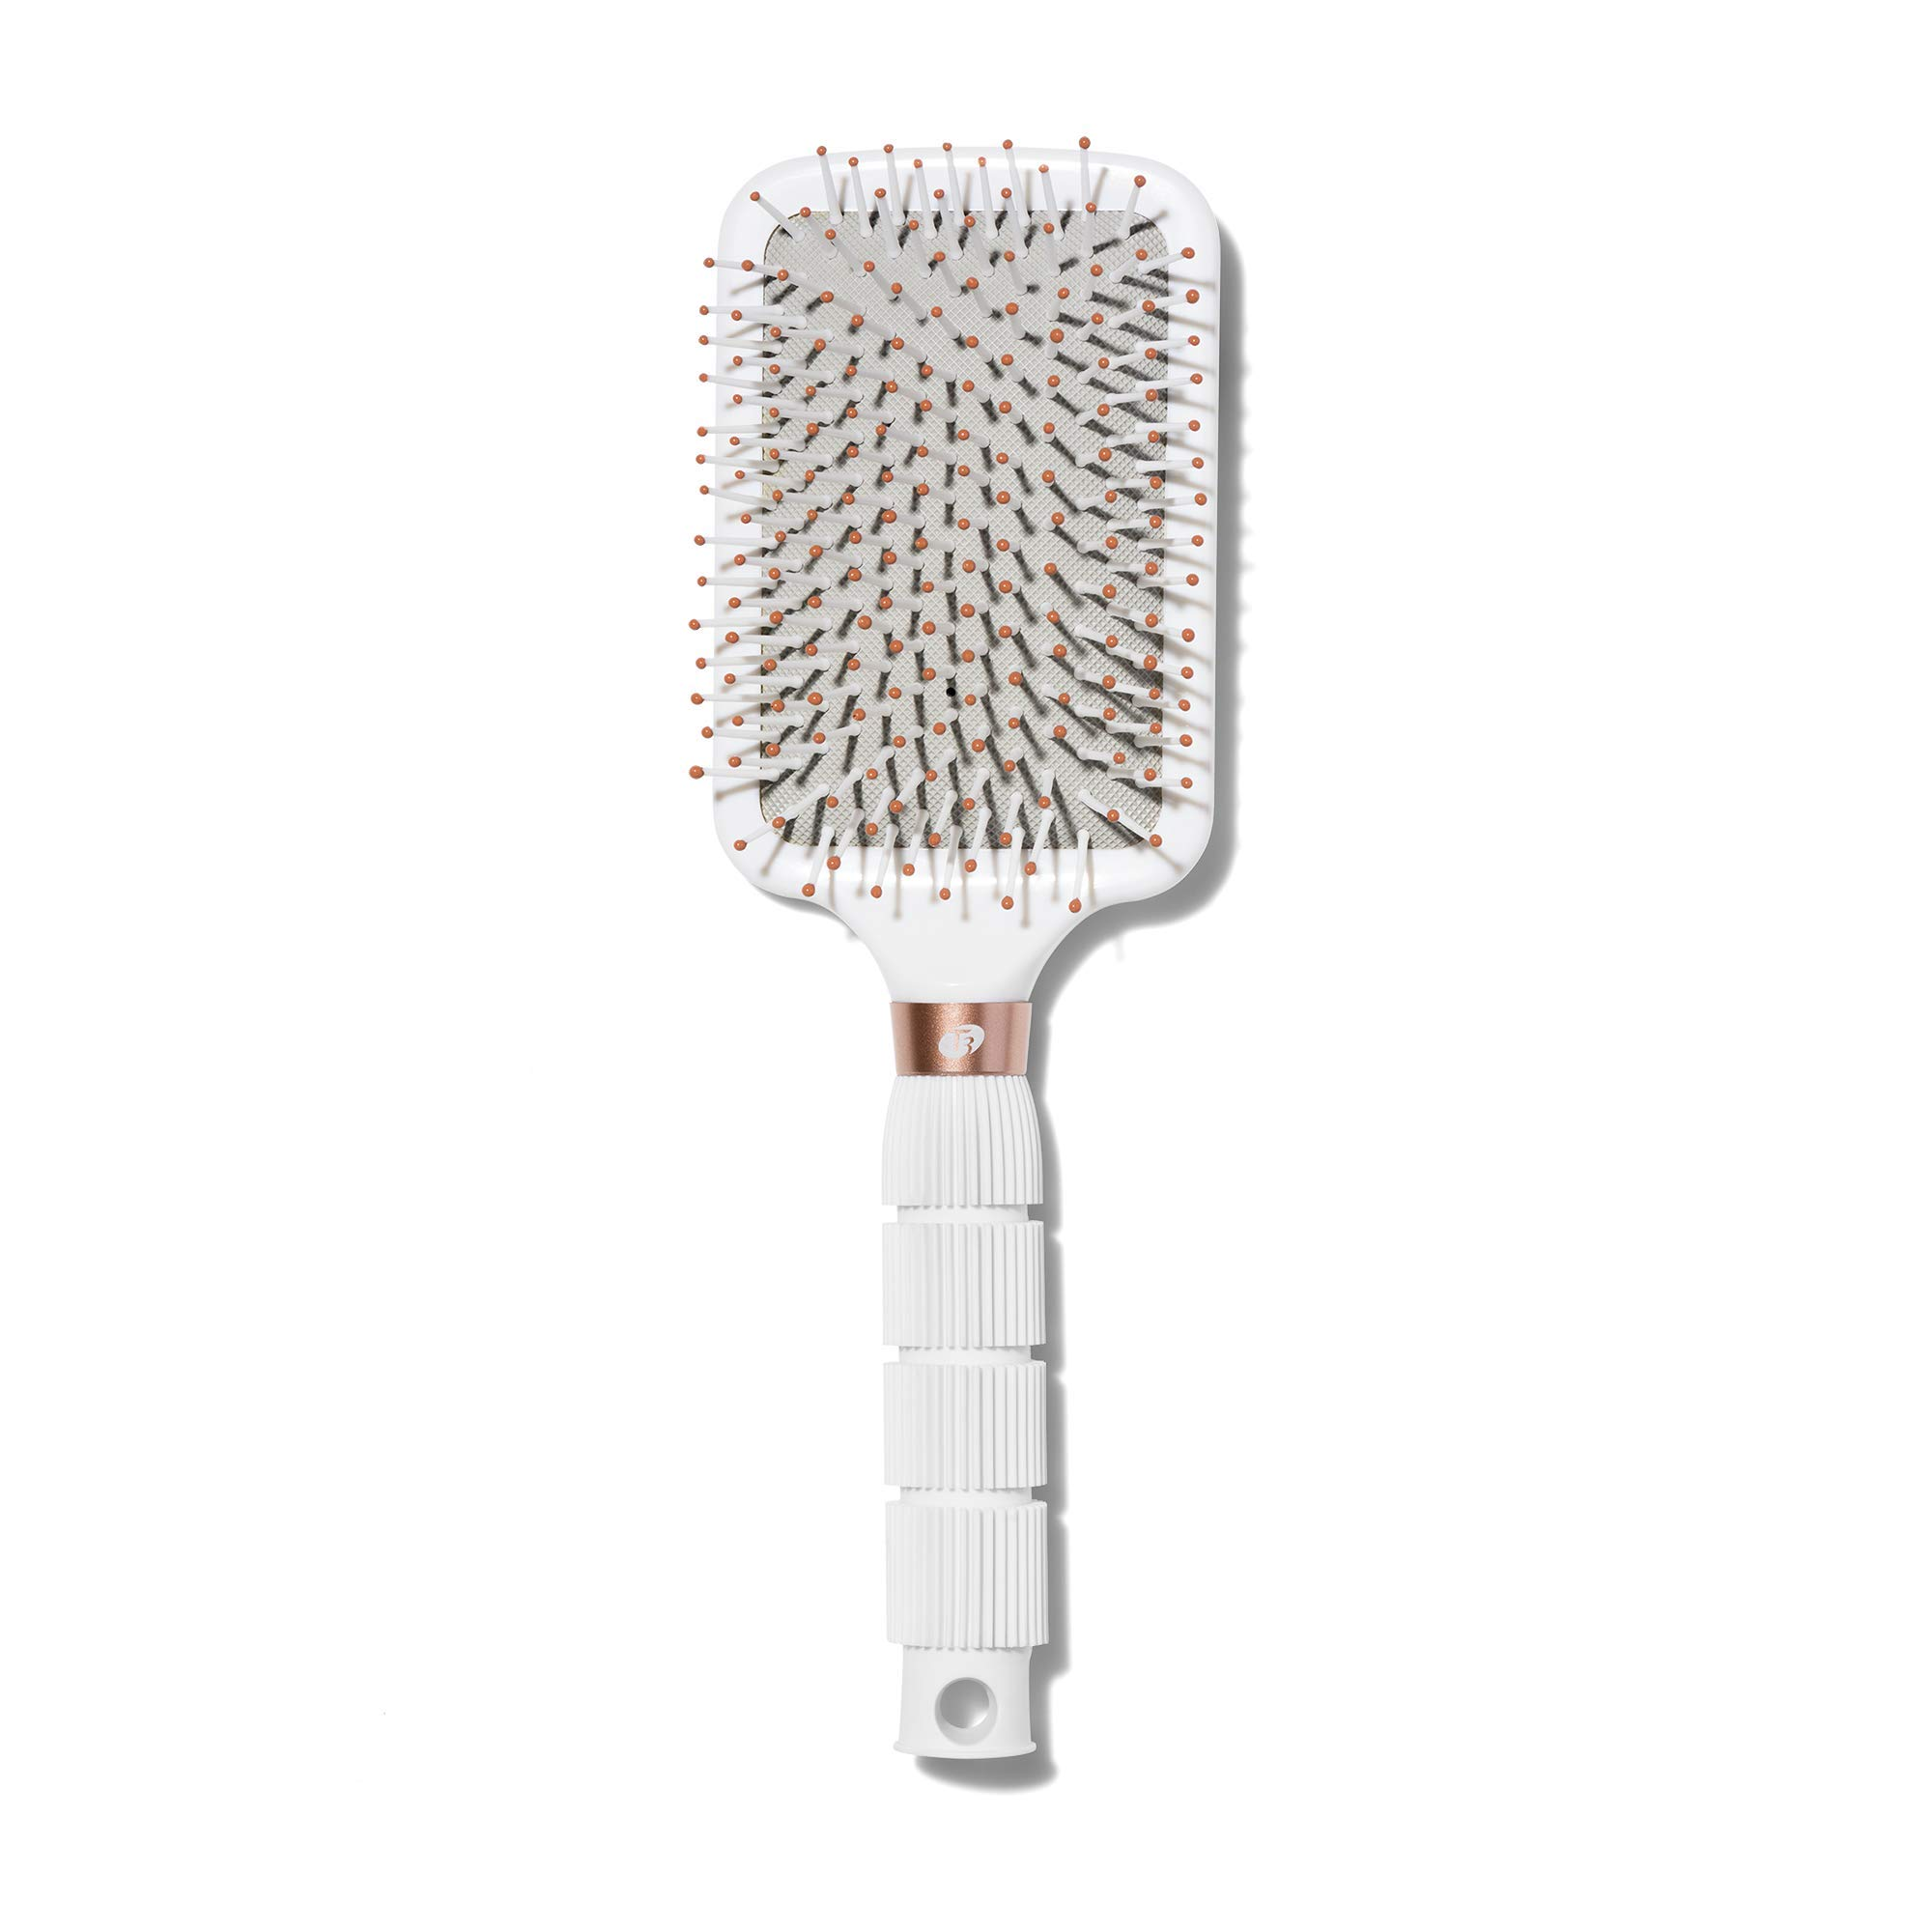 T3 - Smooth Paddle Hair Brush | Professional Cushioned Paddle Brush for Sleek Smooth Blowouts | Heat Resistant Bristles